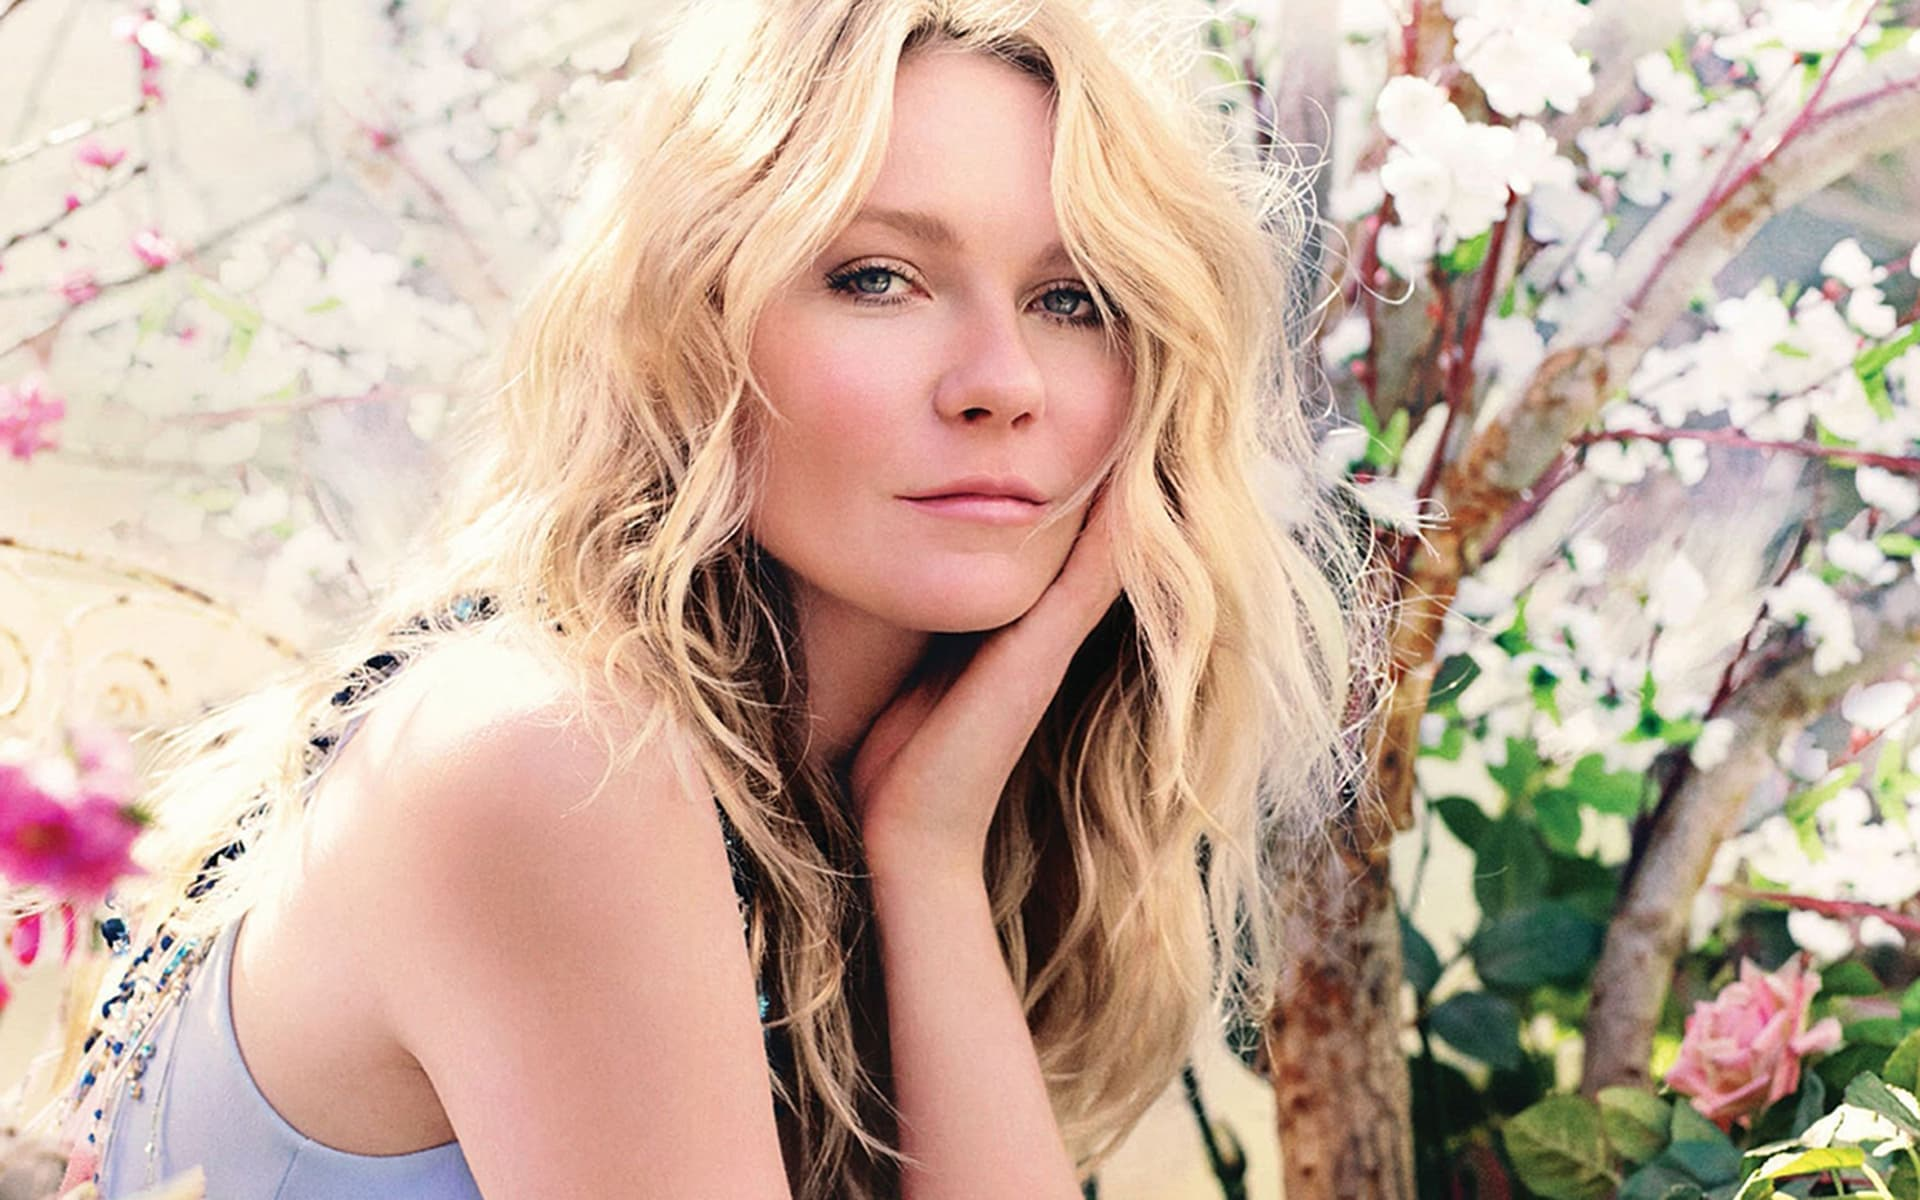 kirsten dunst wallpapers hd images and pictures high resolution